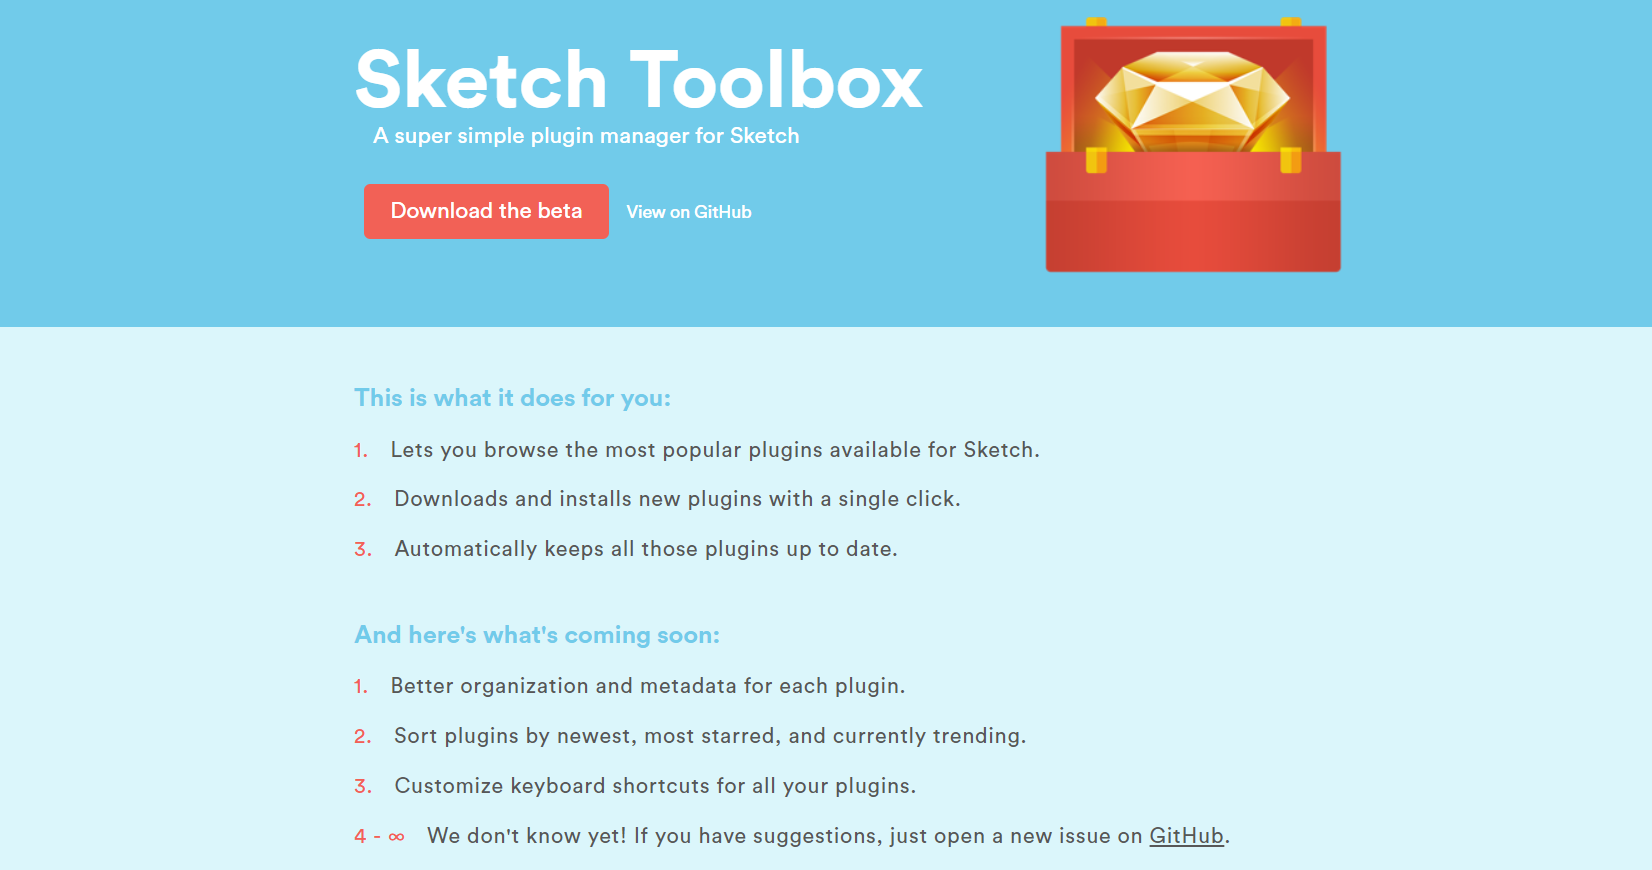 Sketch Toolbox website